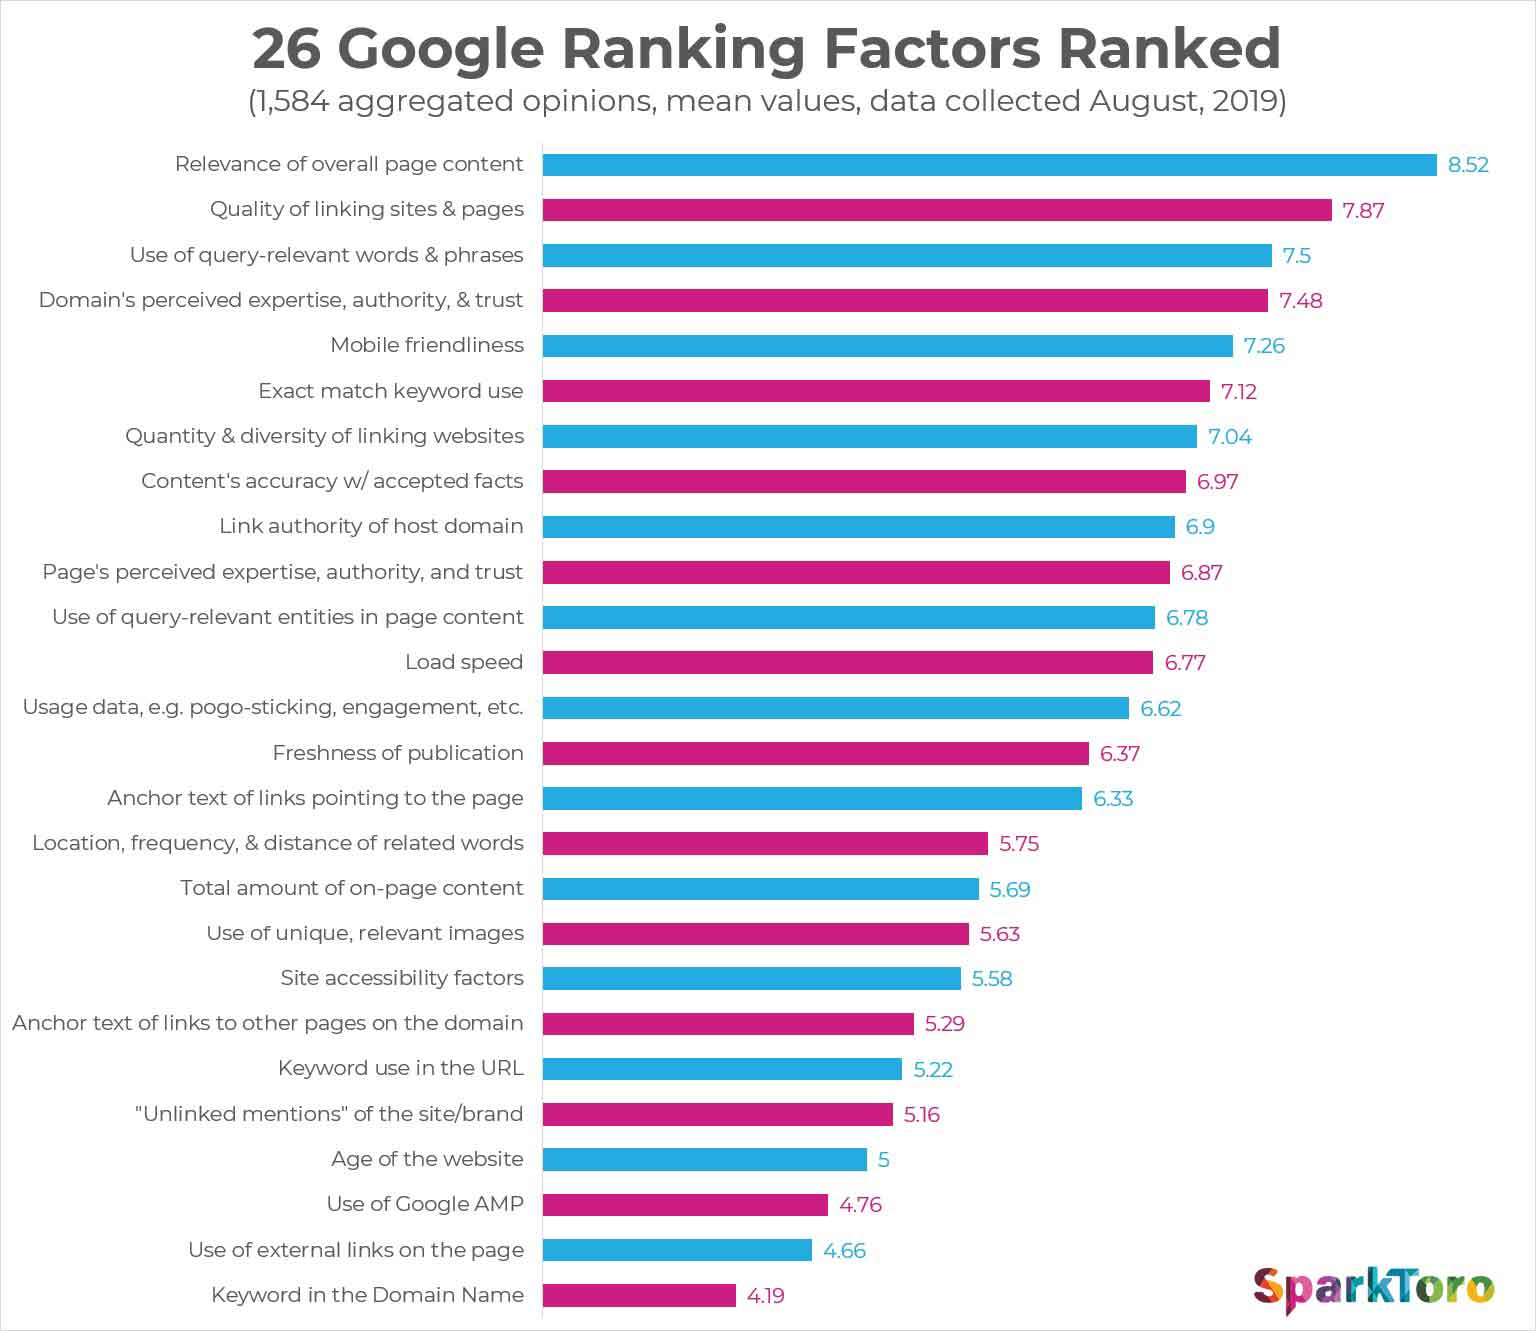 top-26-ranking-factors-on-google-in-2019-SEO-according